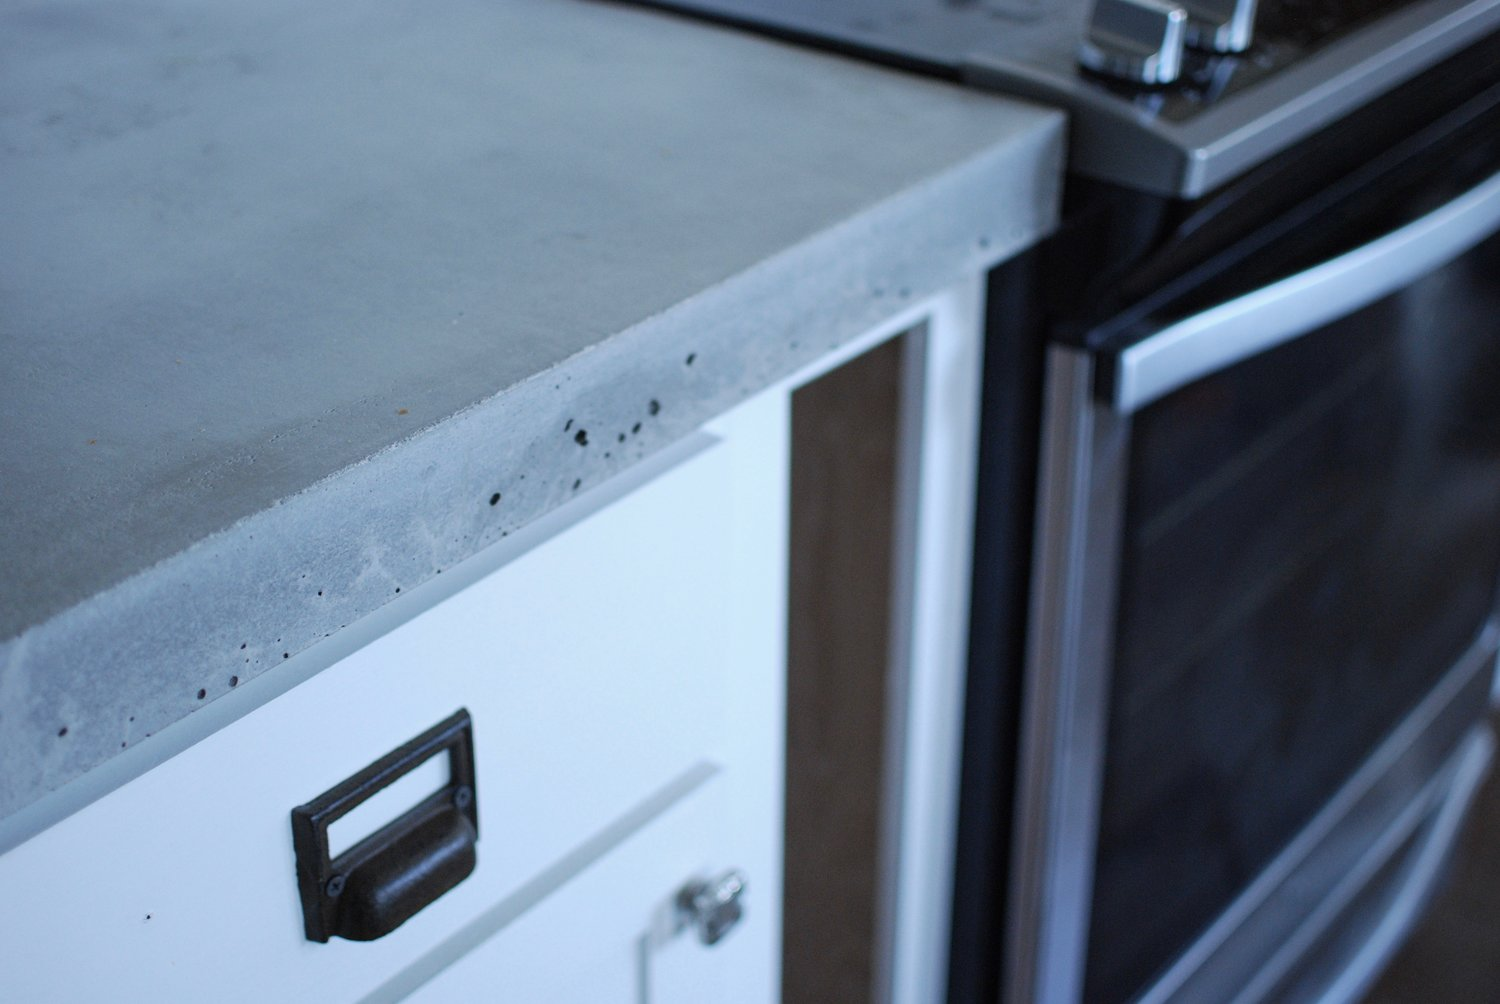 DIY Concrete Countertops - Part 2, pouring and finishing. — greywoodmama